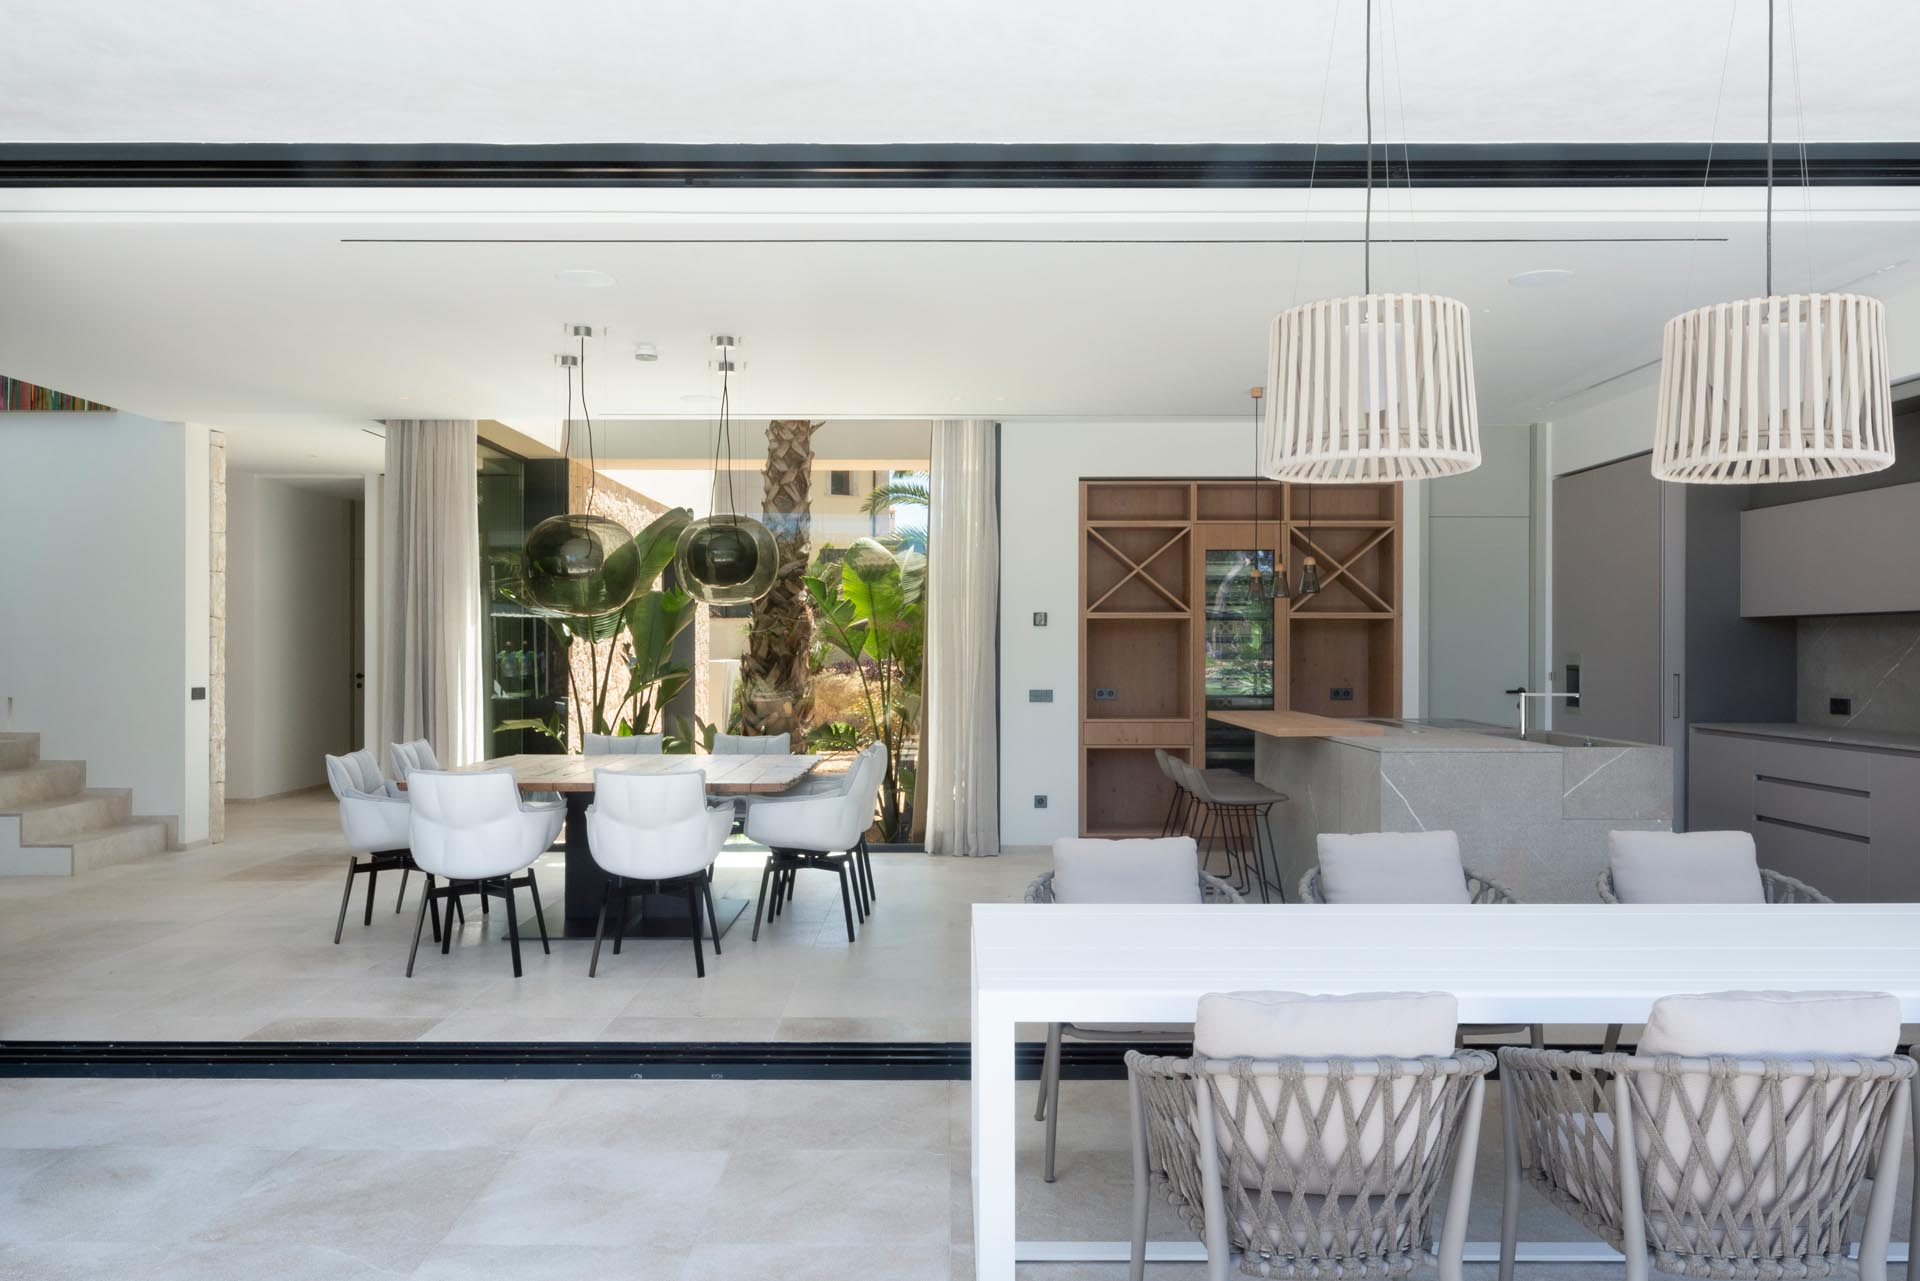 This modern home has large sliding glass walls that connect with the outdoors, creating a single giant entertaining space that's perfect for indoor / outdoor living.